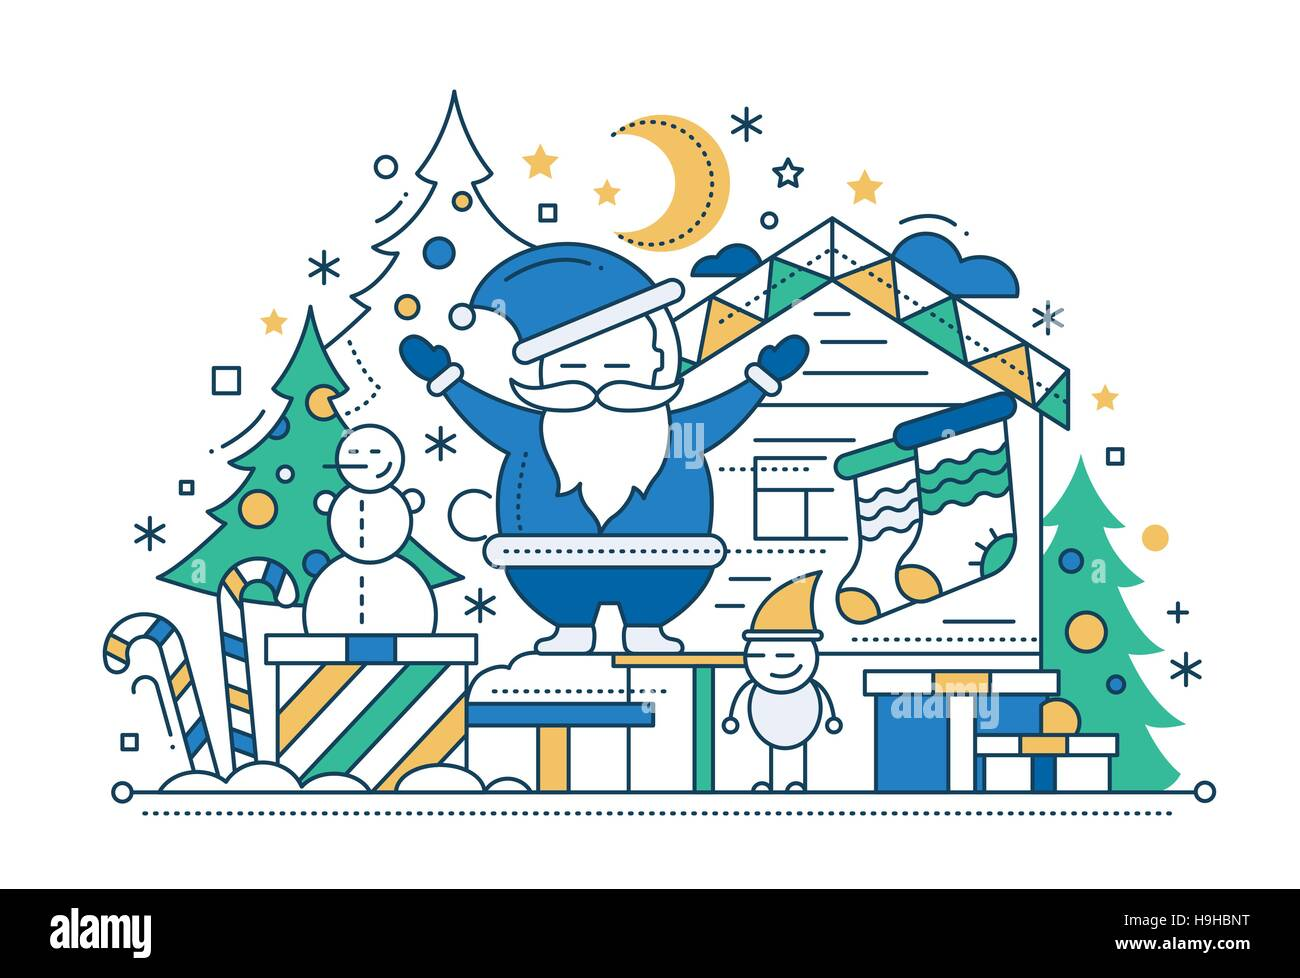 Merry Christmas Line Flat Design Card With Holidays Symbols Santa